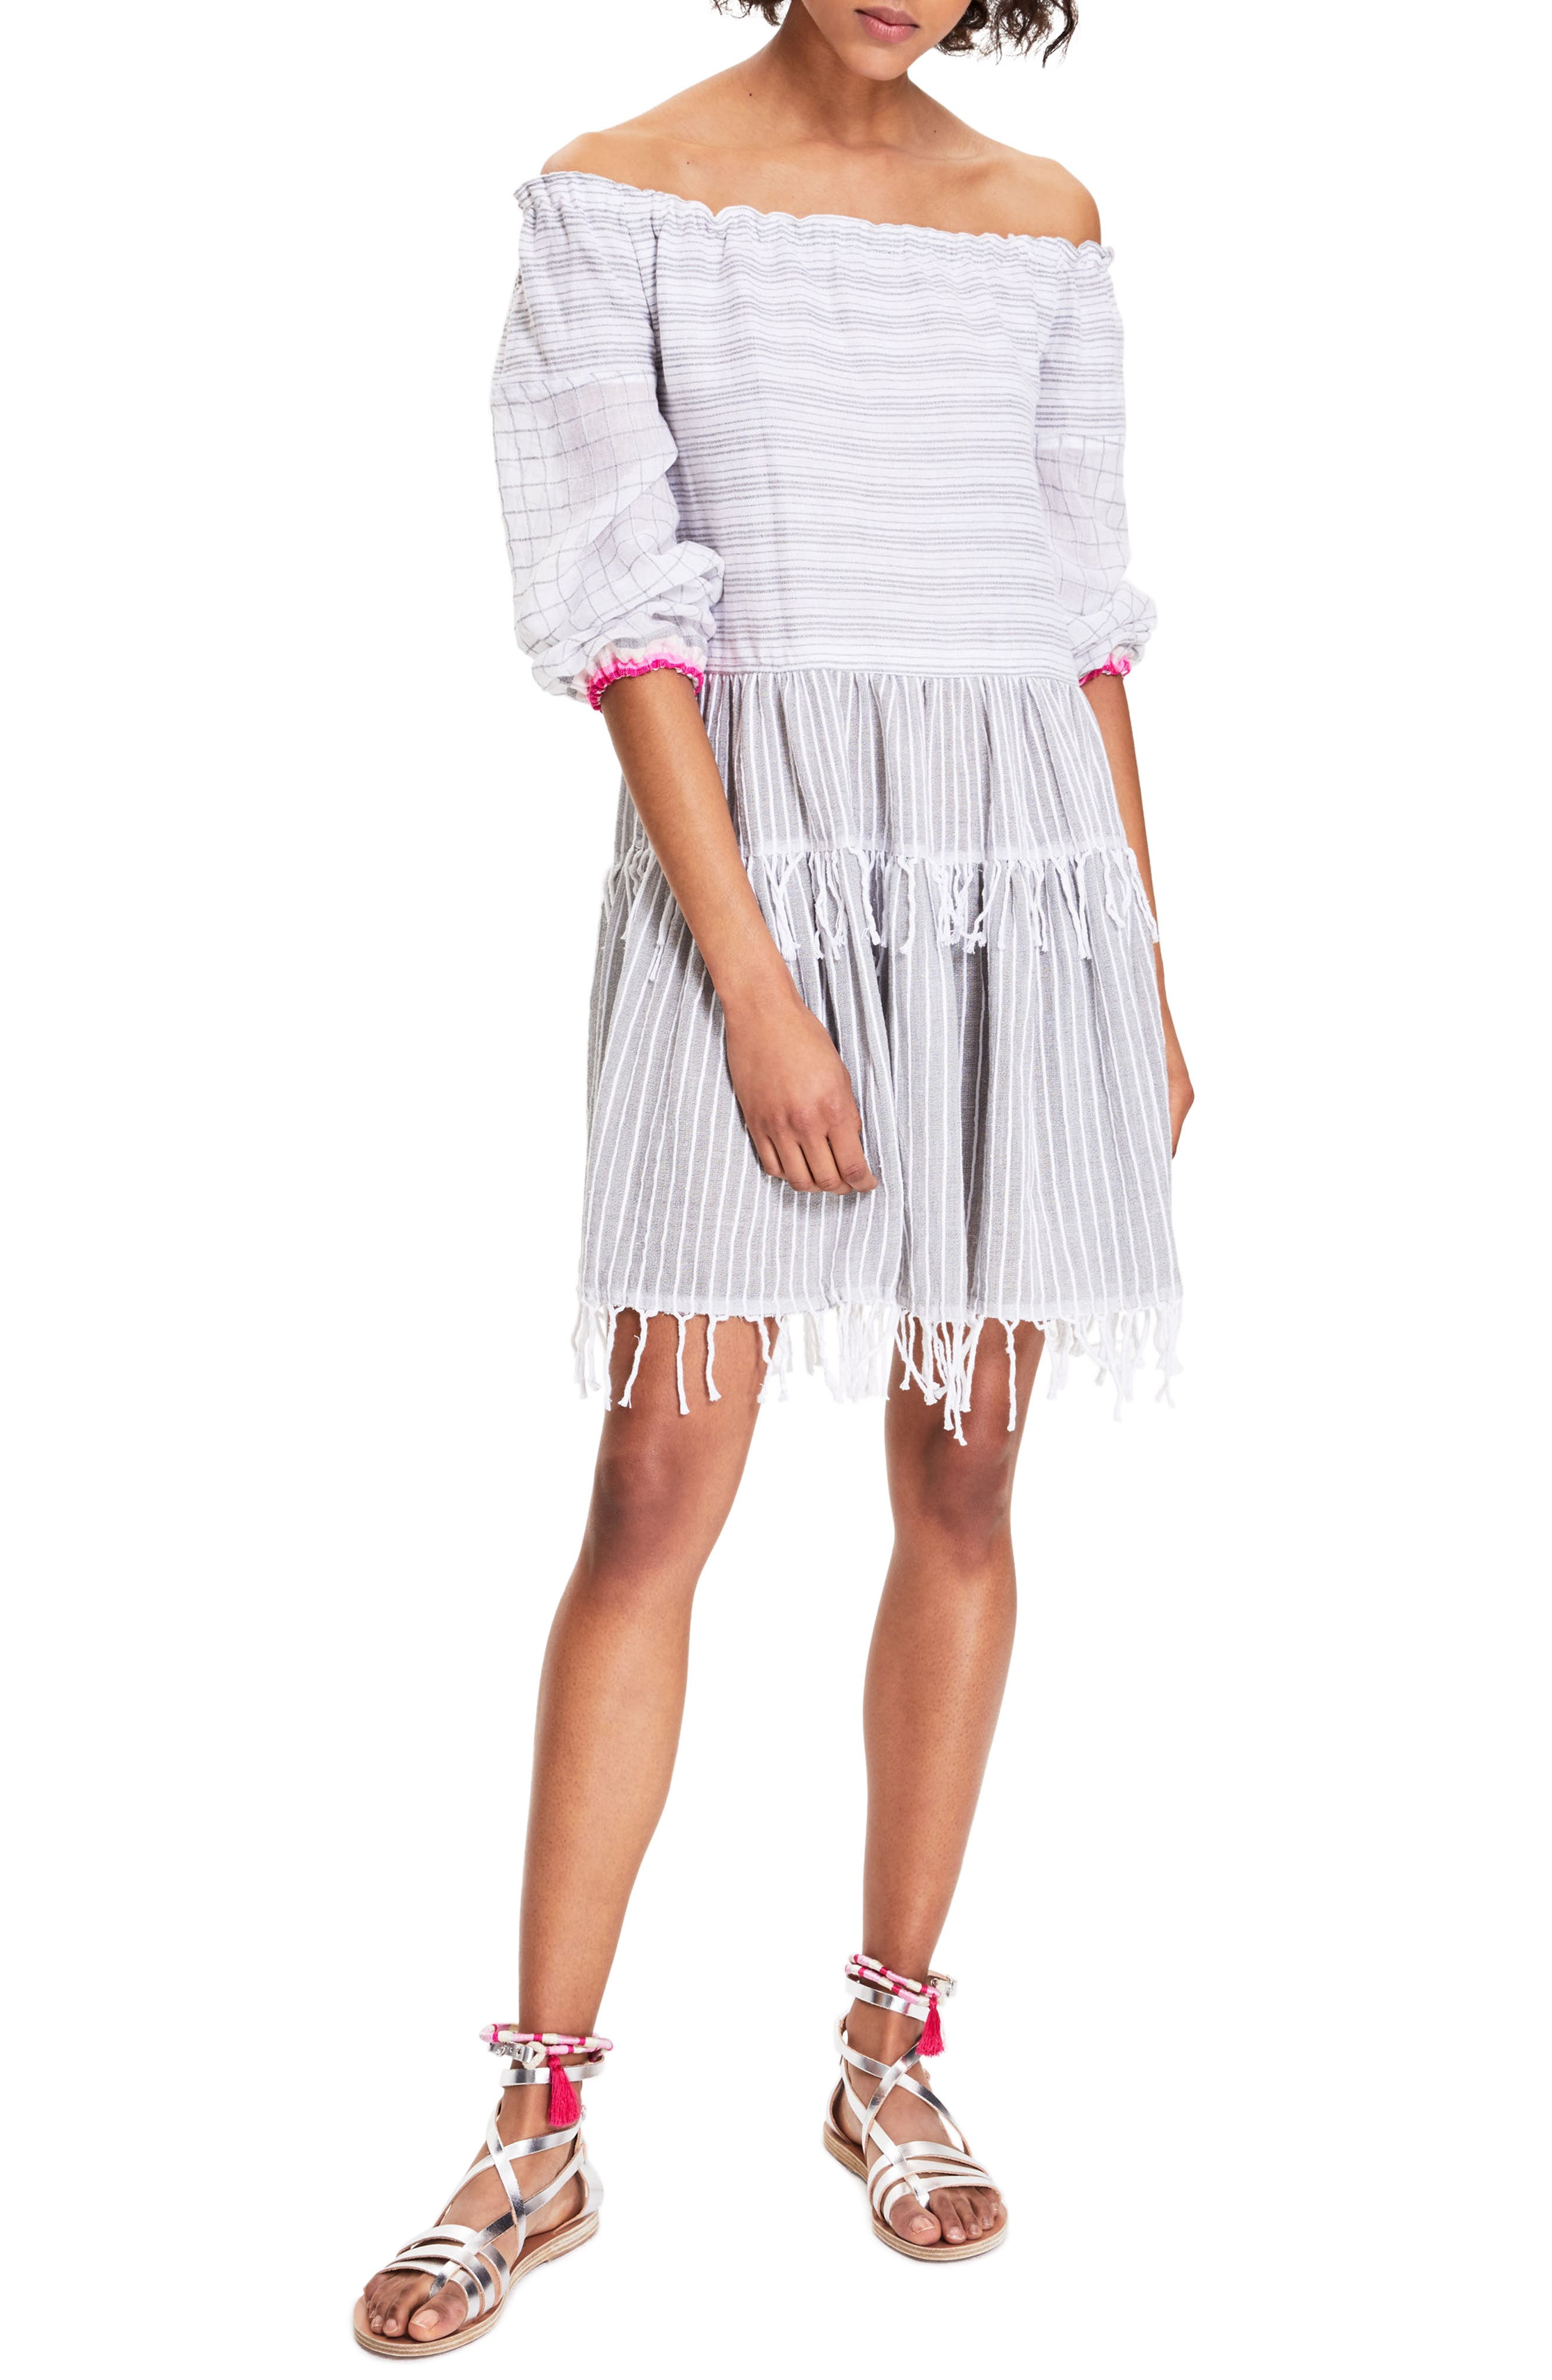 Anana Off the Shoulder Cover-Up Dress,                         Main,                         color, 100